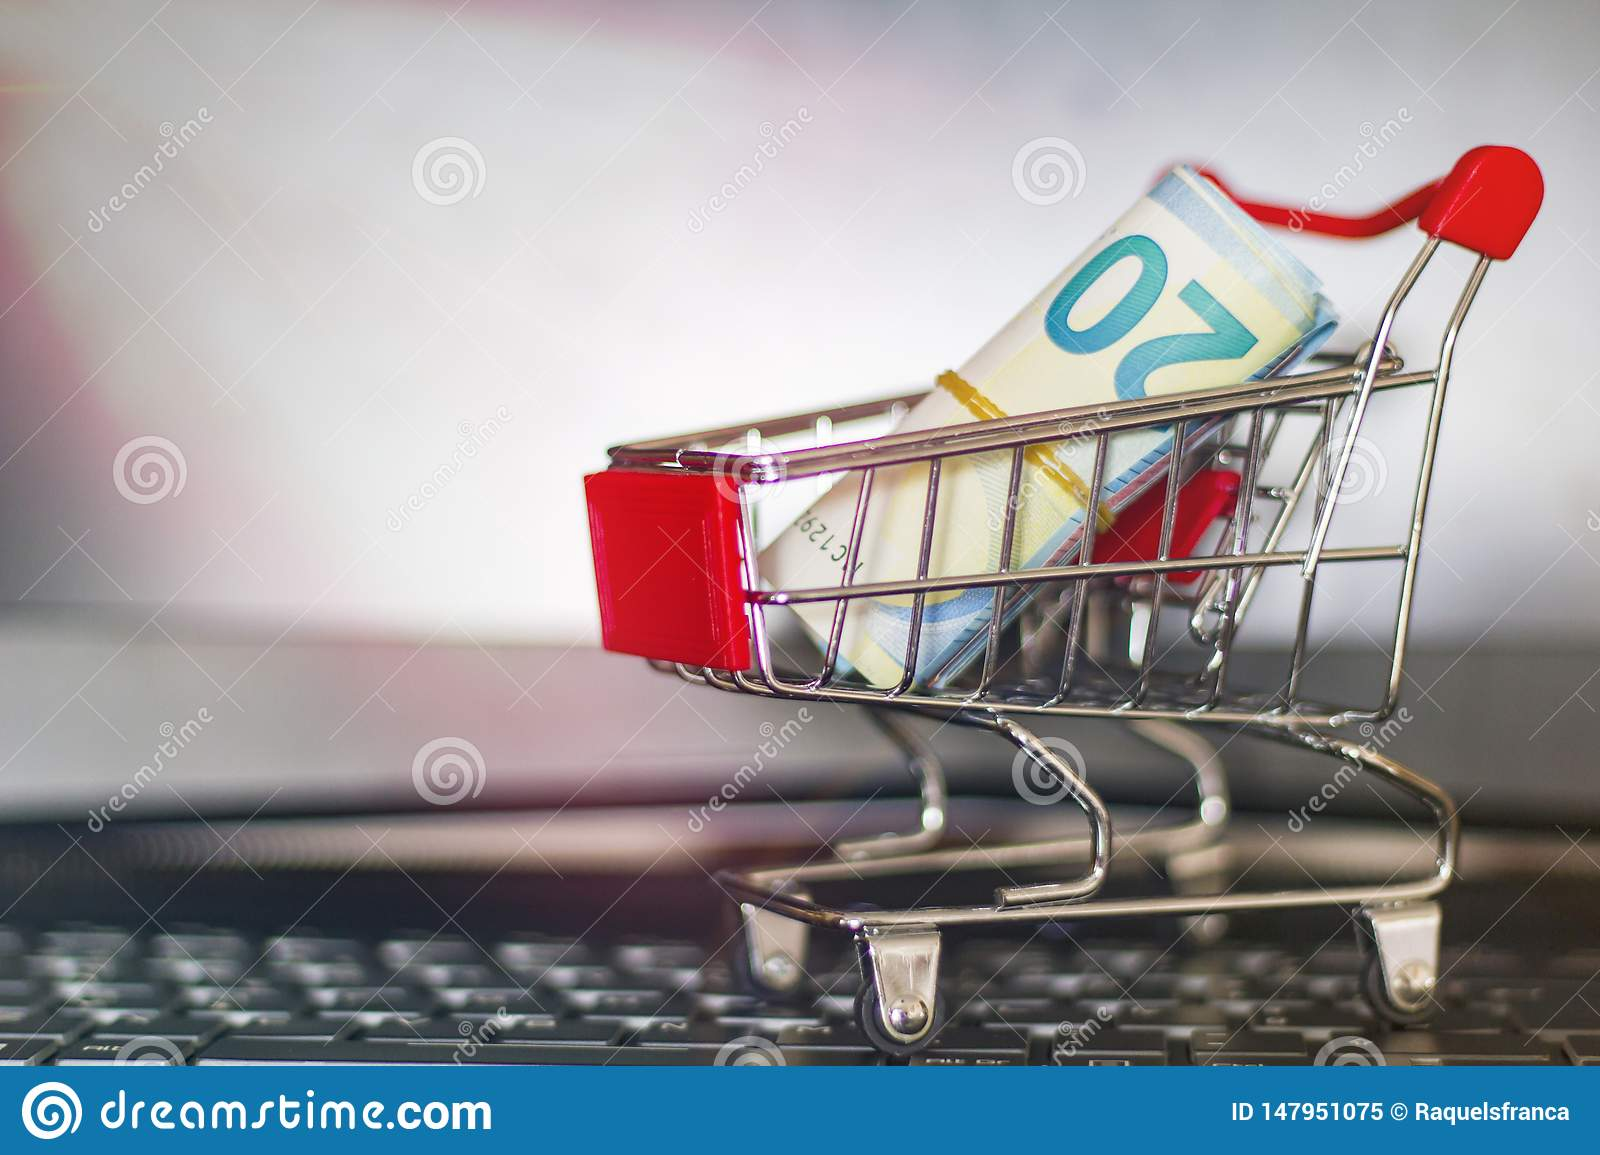 Shopping trolley on a laptop keyboard. Online shopping concept